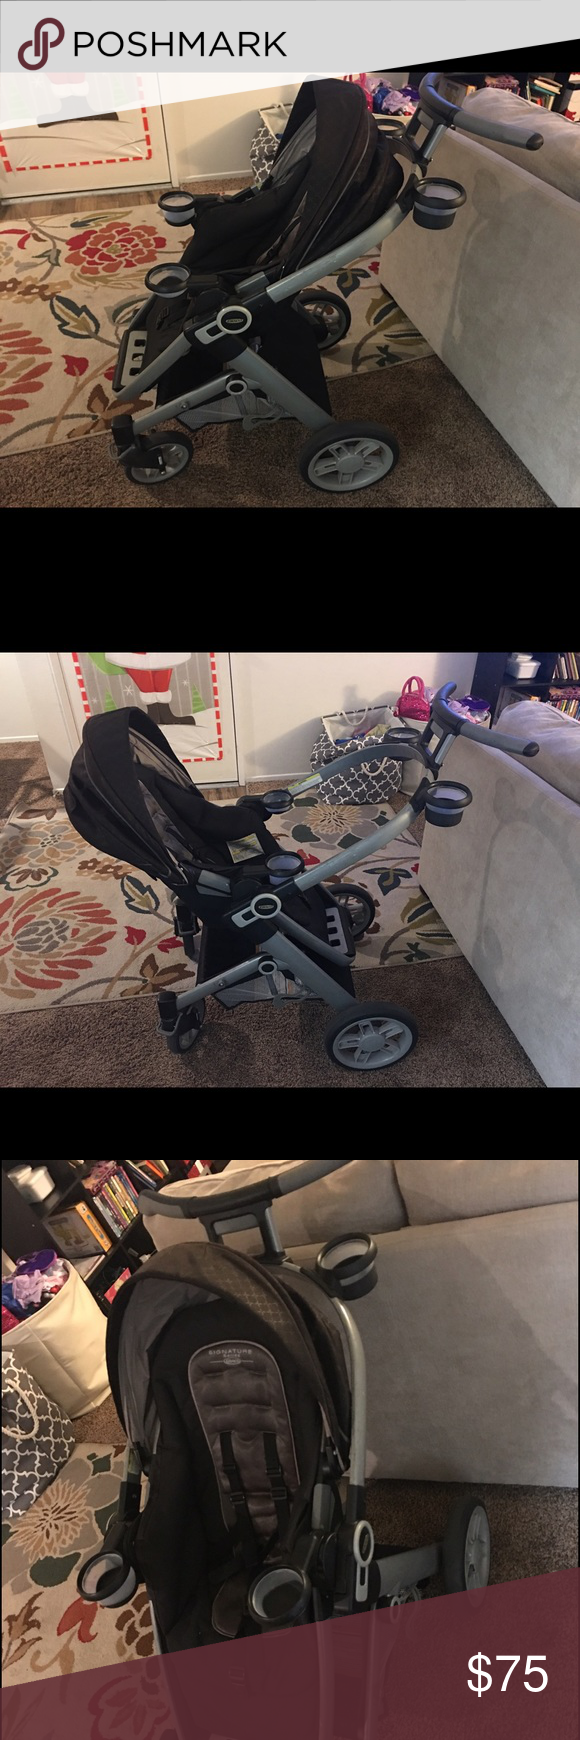 Graco stroller Still in good condition used it for my